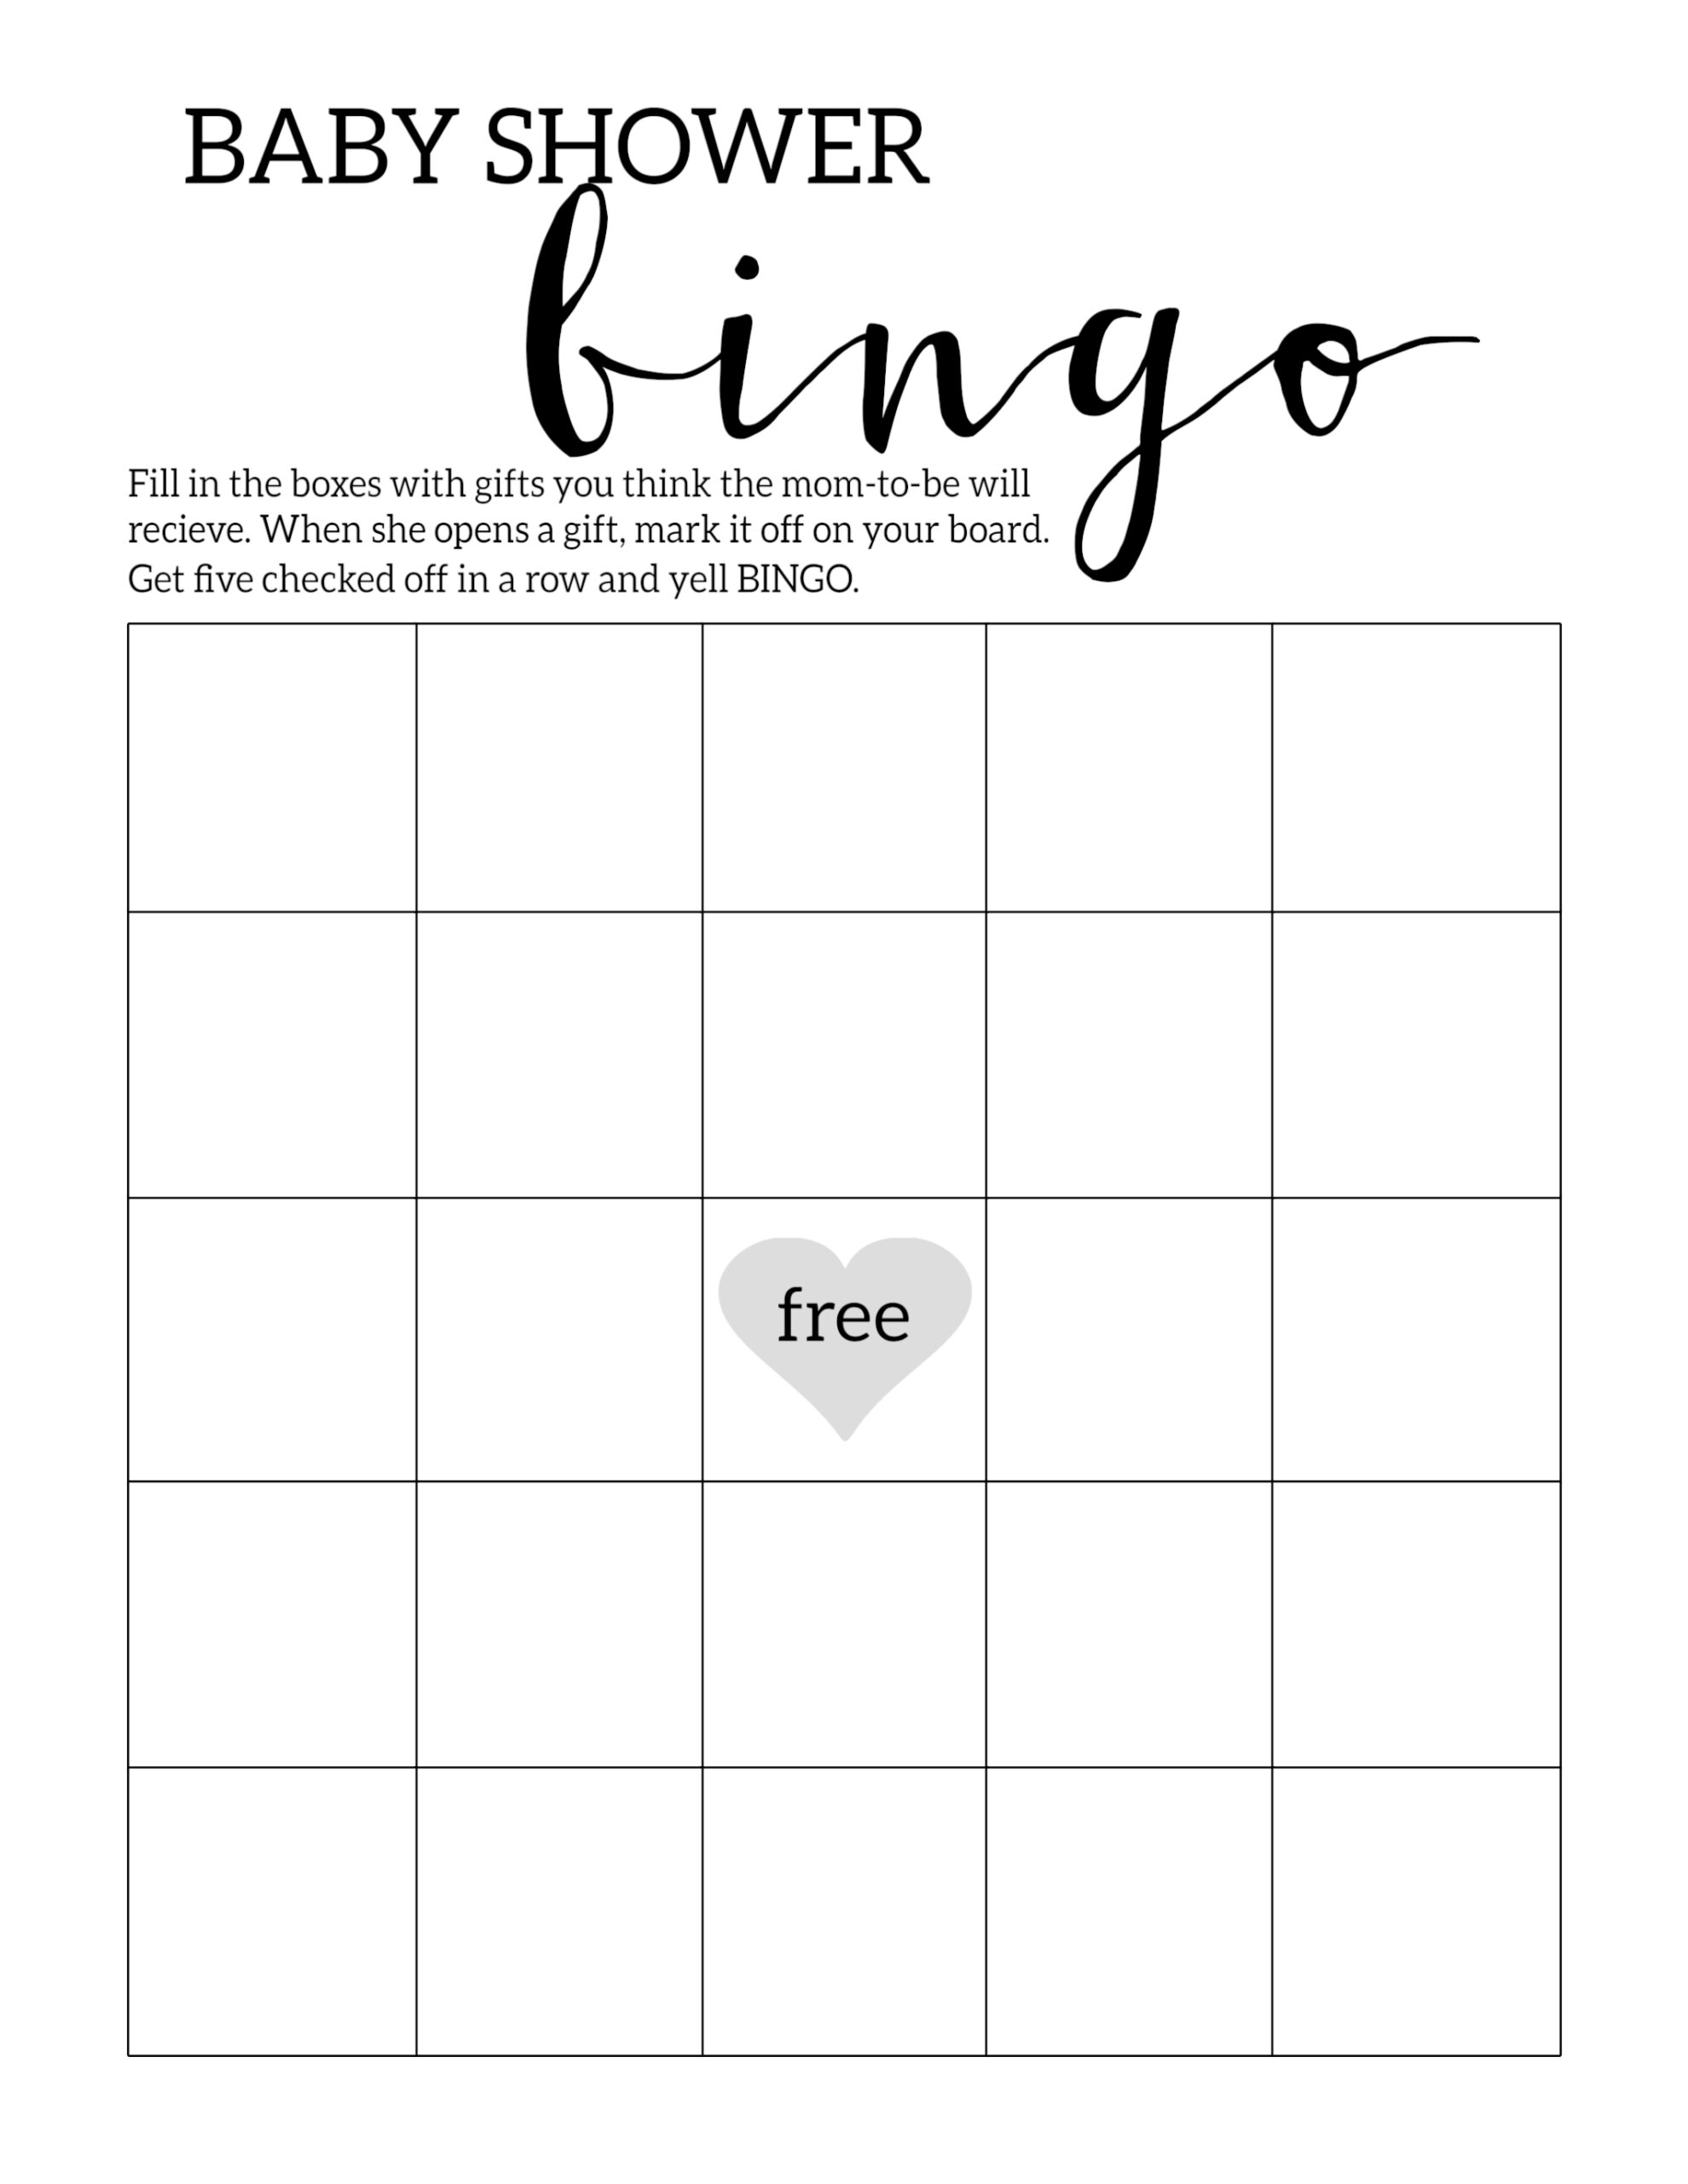 Baby Shower Bingo Printable Cards Template